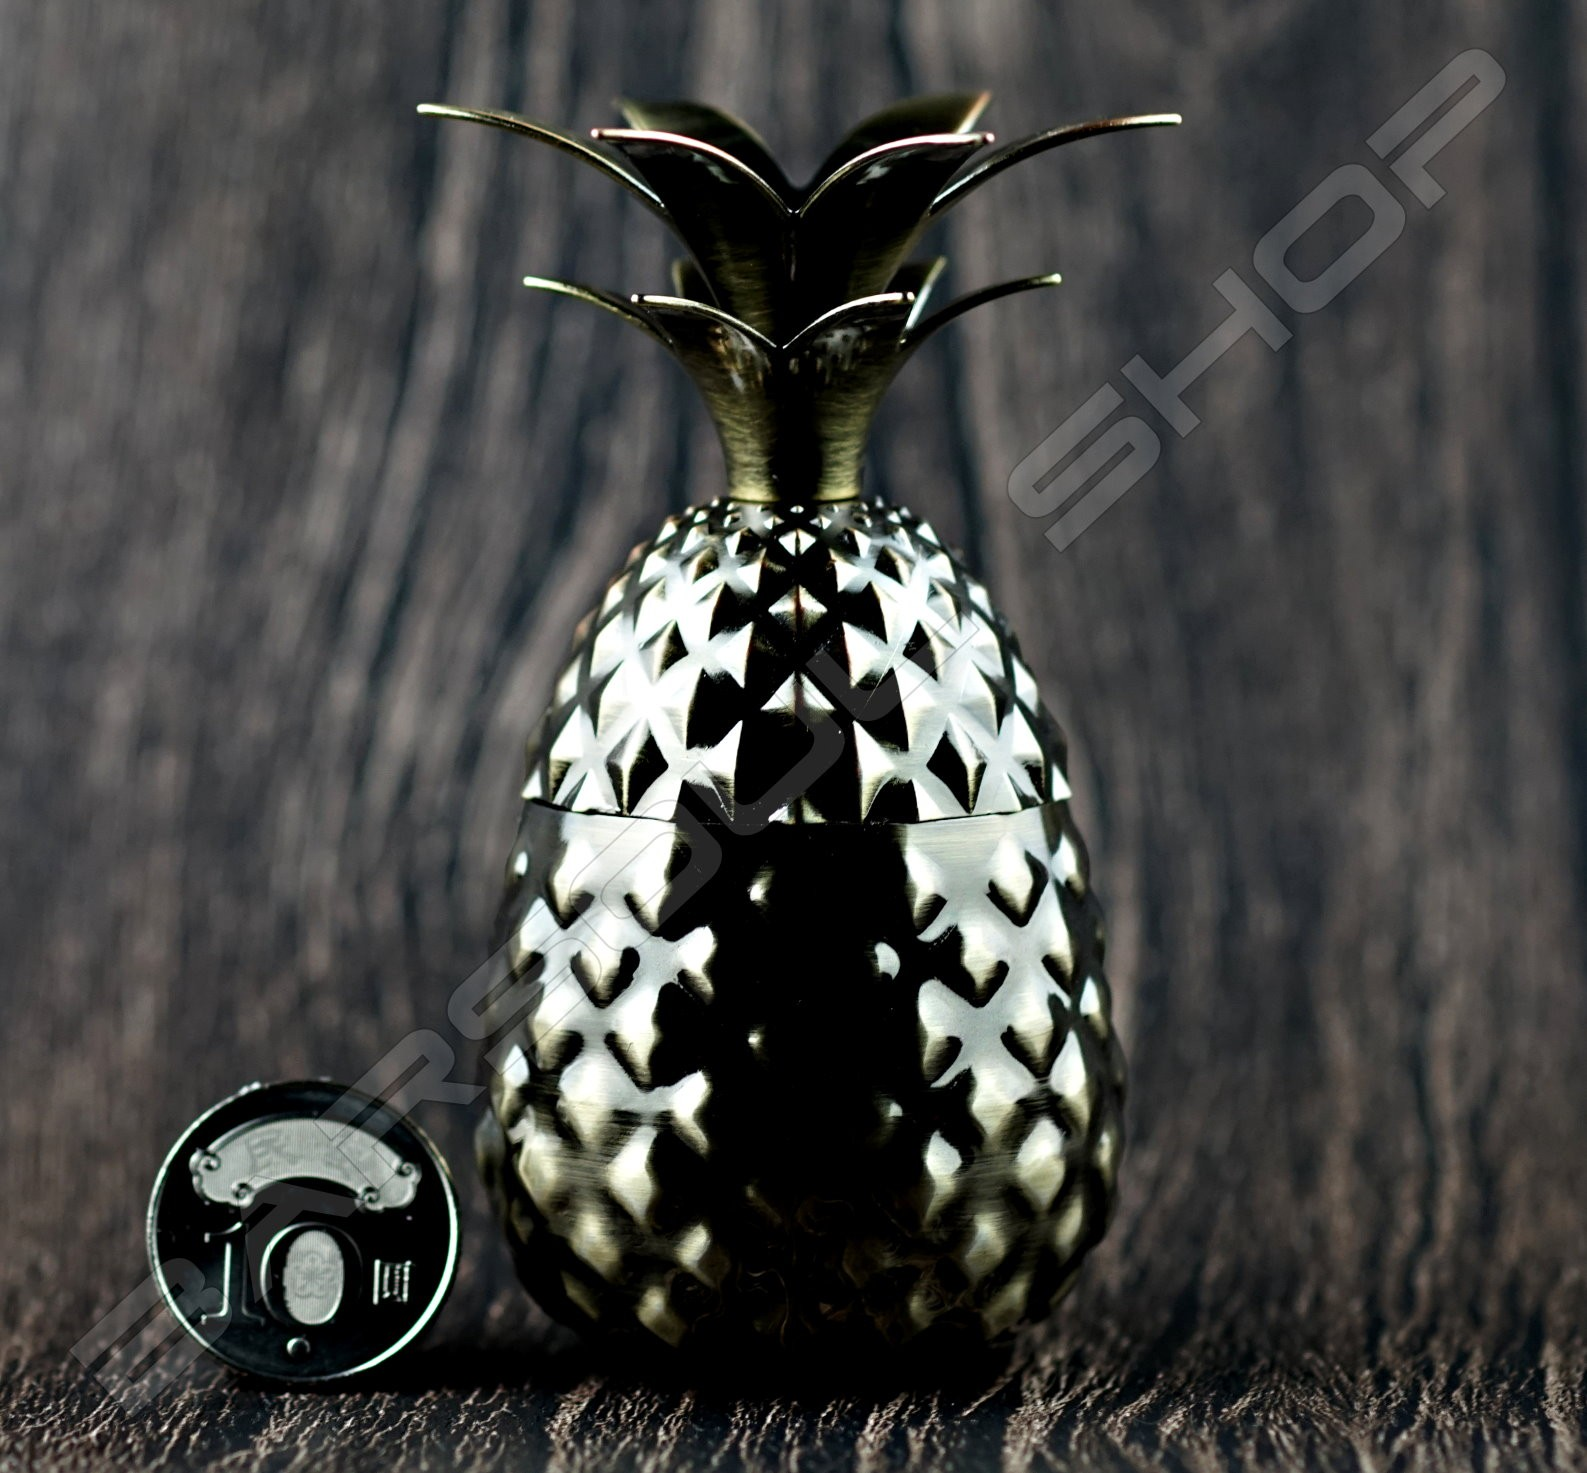 迷你鳳梨造型杯(青銅色)80ml Mini Plating pineapple tiki cup(Bronze)